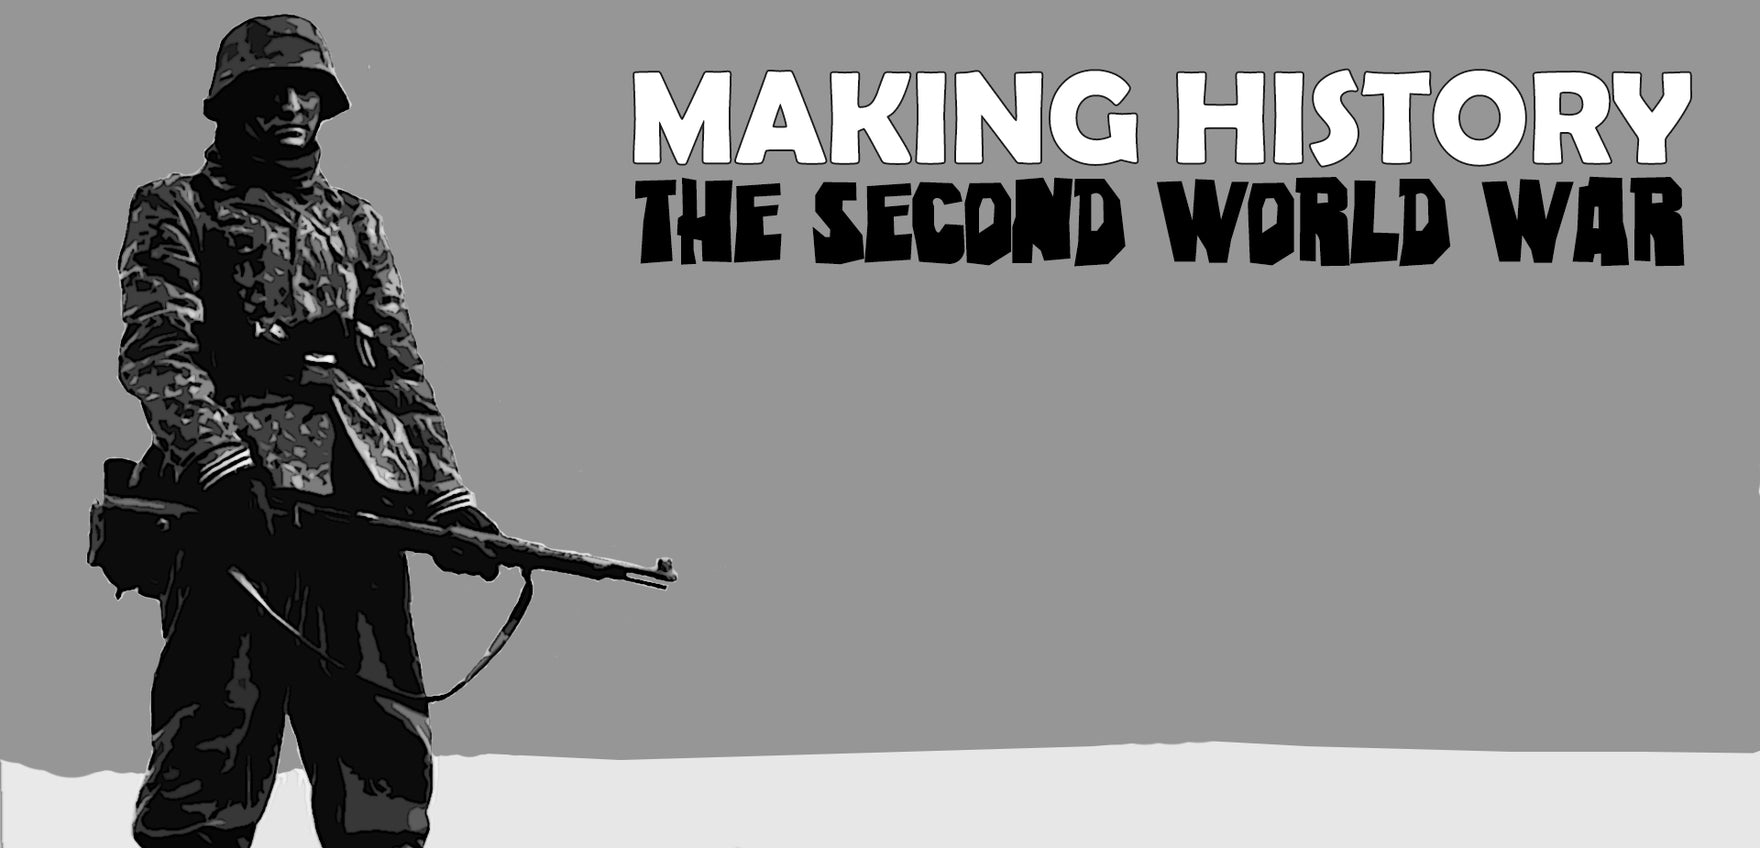 The Second World War: Historic Timelines & Advanced Weapons